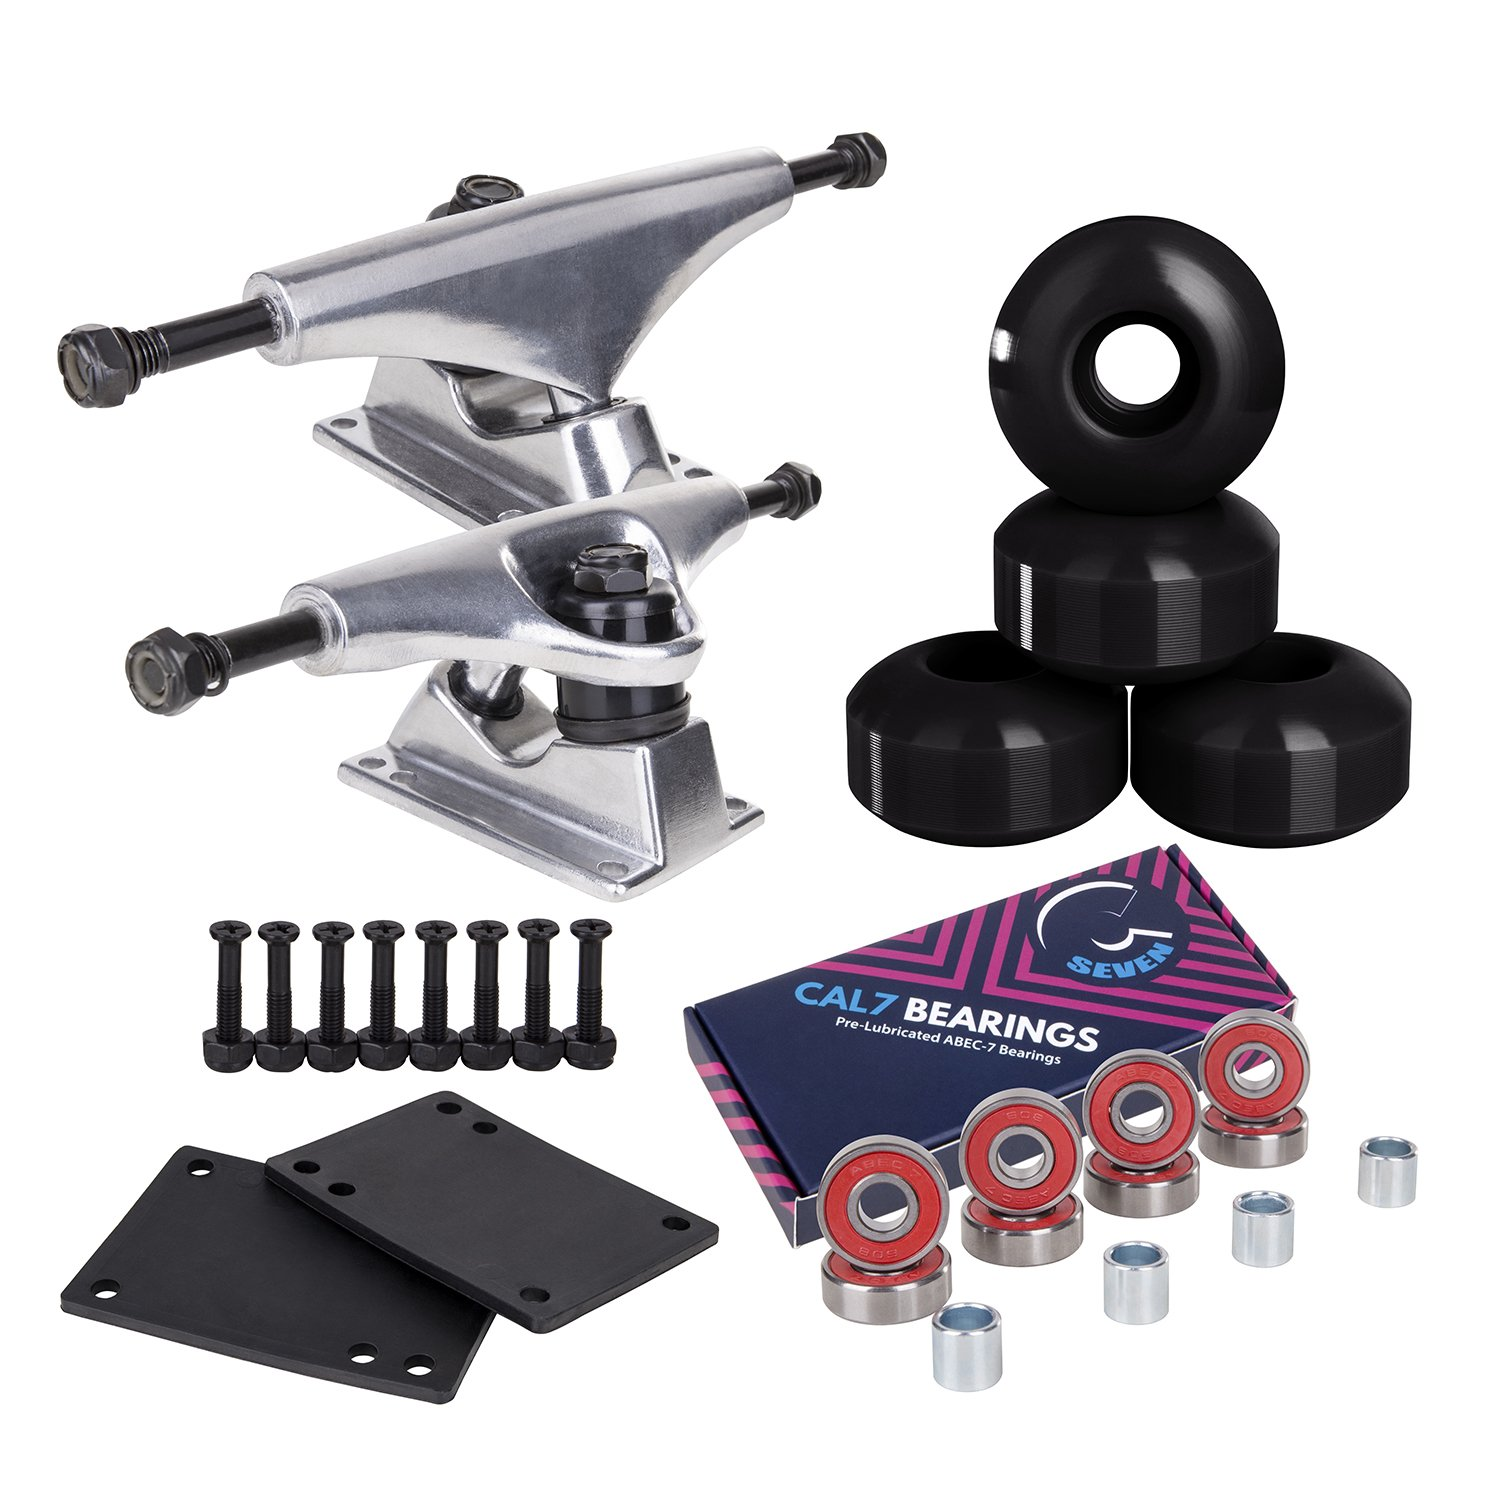 Cal 7 Skateboard Package Combo with 5 Inch / 129 Millimeter Trucks, 52mm 99A Wheels, Complete Set of Bearings and Steel Hardware (Silver Truck + Black Wheels) by Cal 7